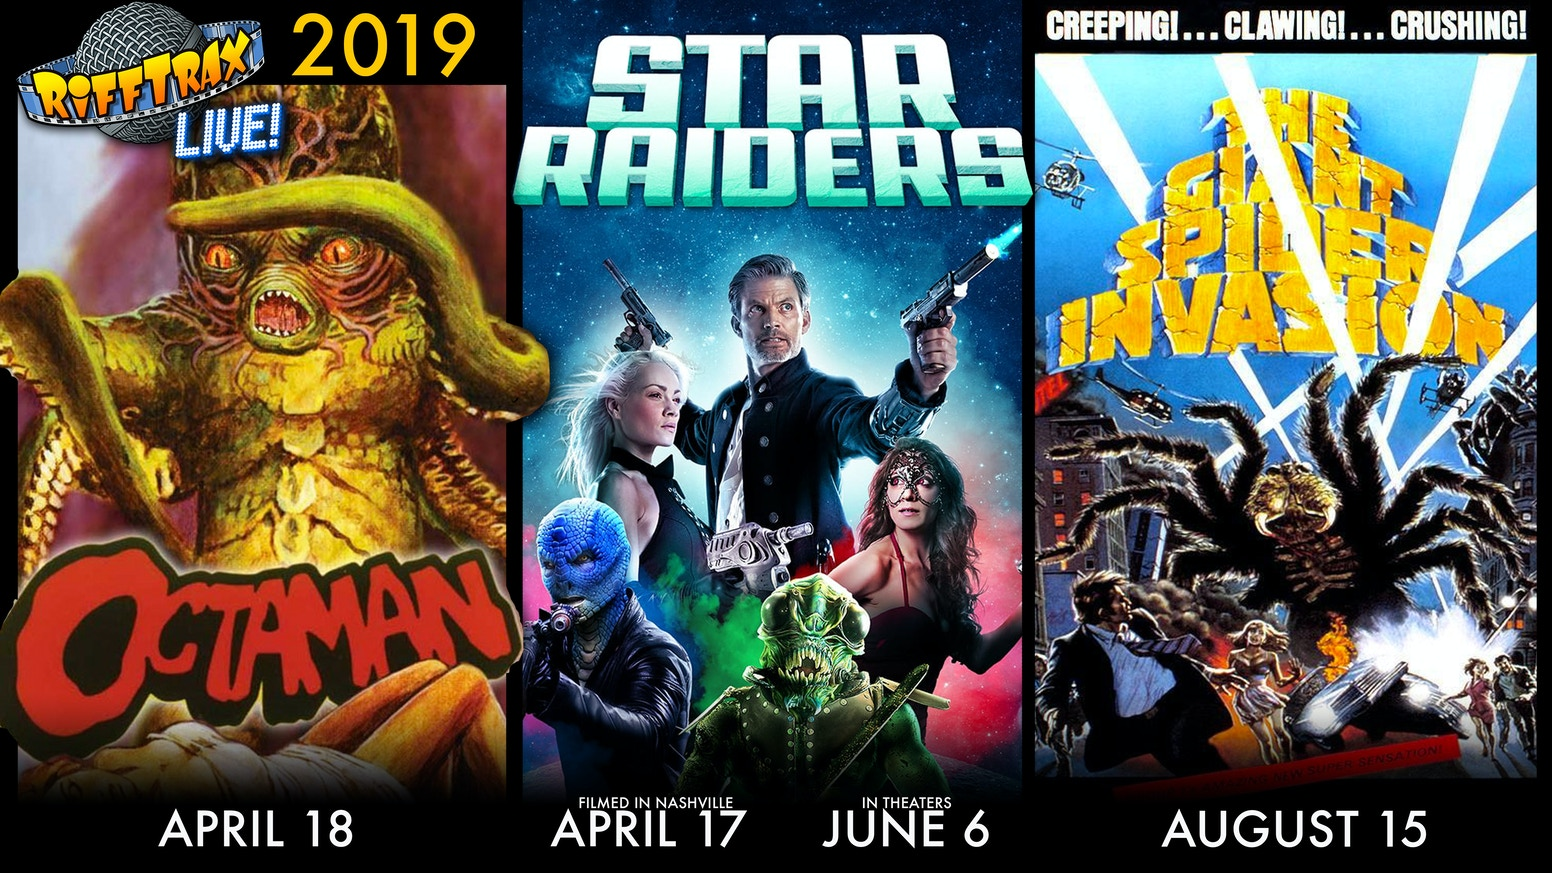 RiffTrax will perform 3 Live Shows in 2019 simulcast to 700+ movie theaters nationwide: OCTAMAN, STAR RAIDERS & GIANT SPIDER INVASION!